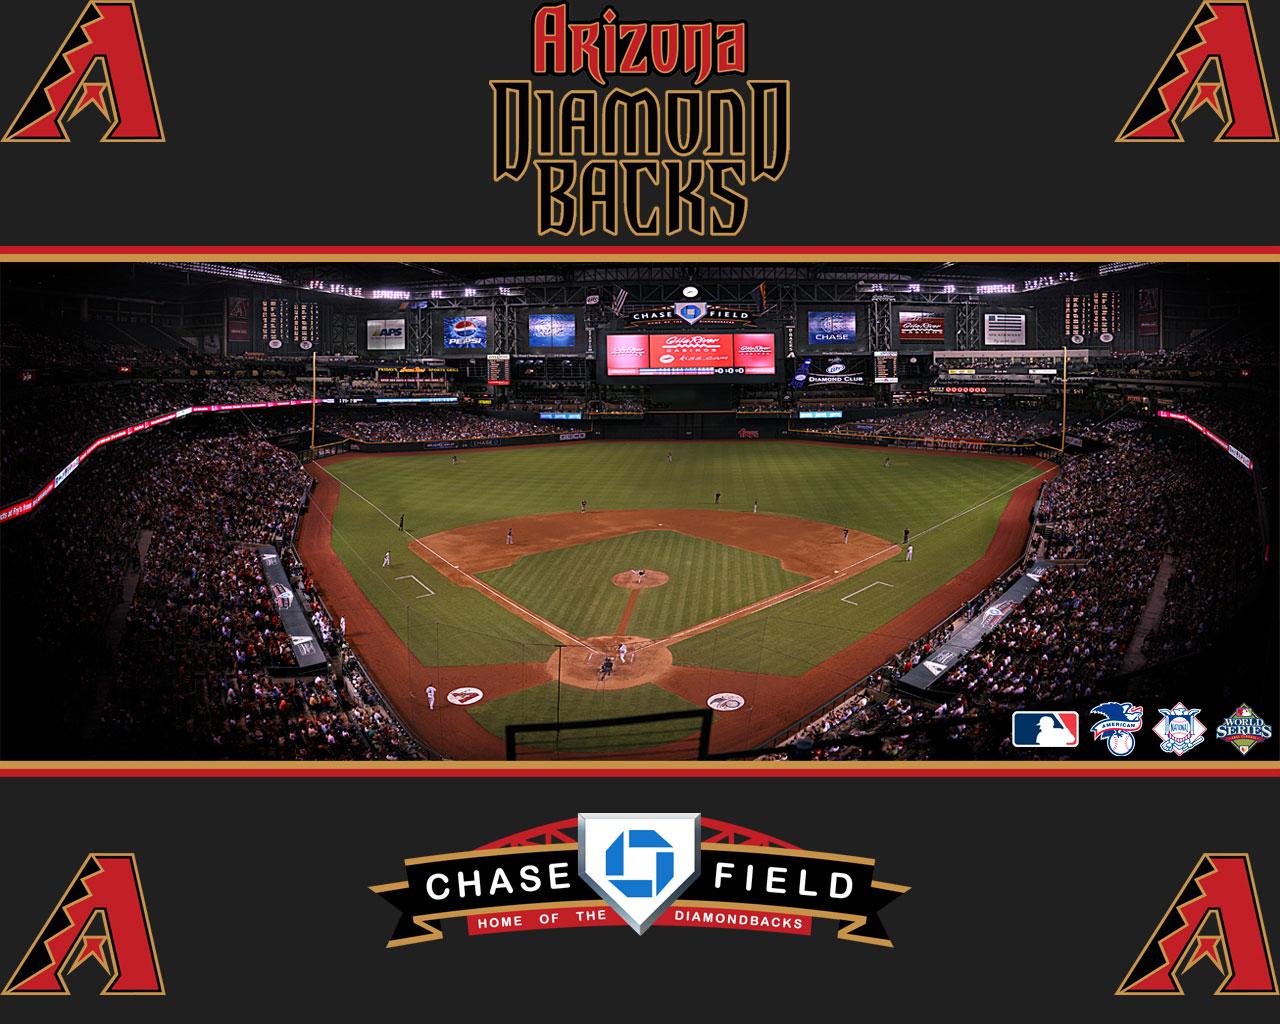 1280x1024 - Arizona Diamondbacks Wallpapers 13